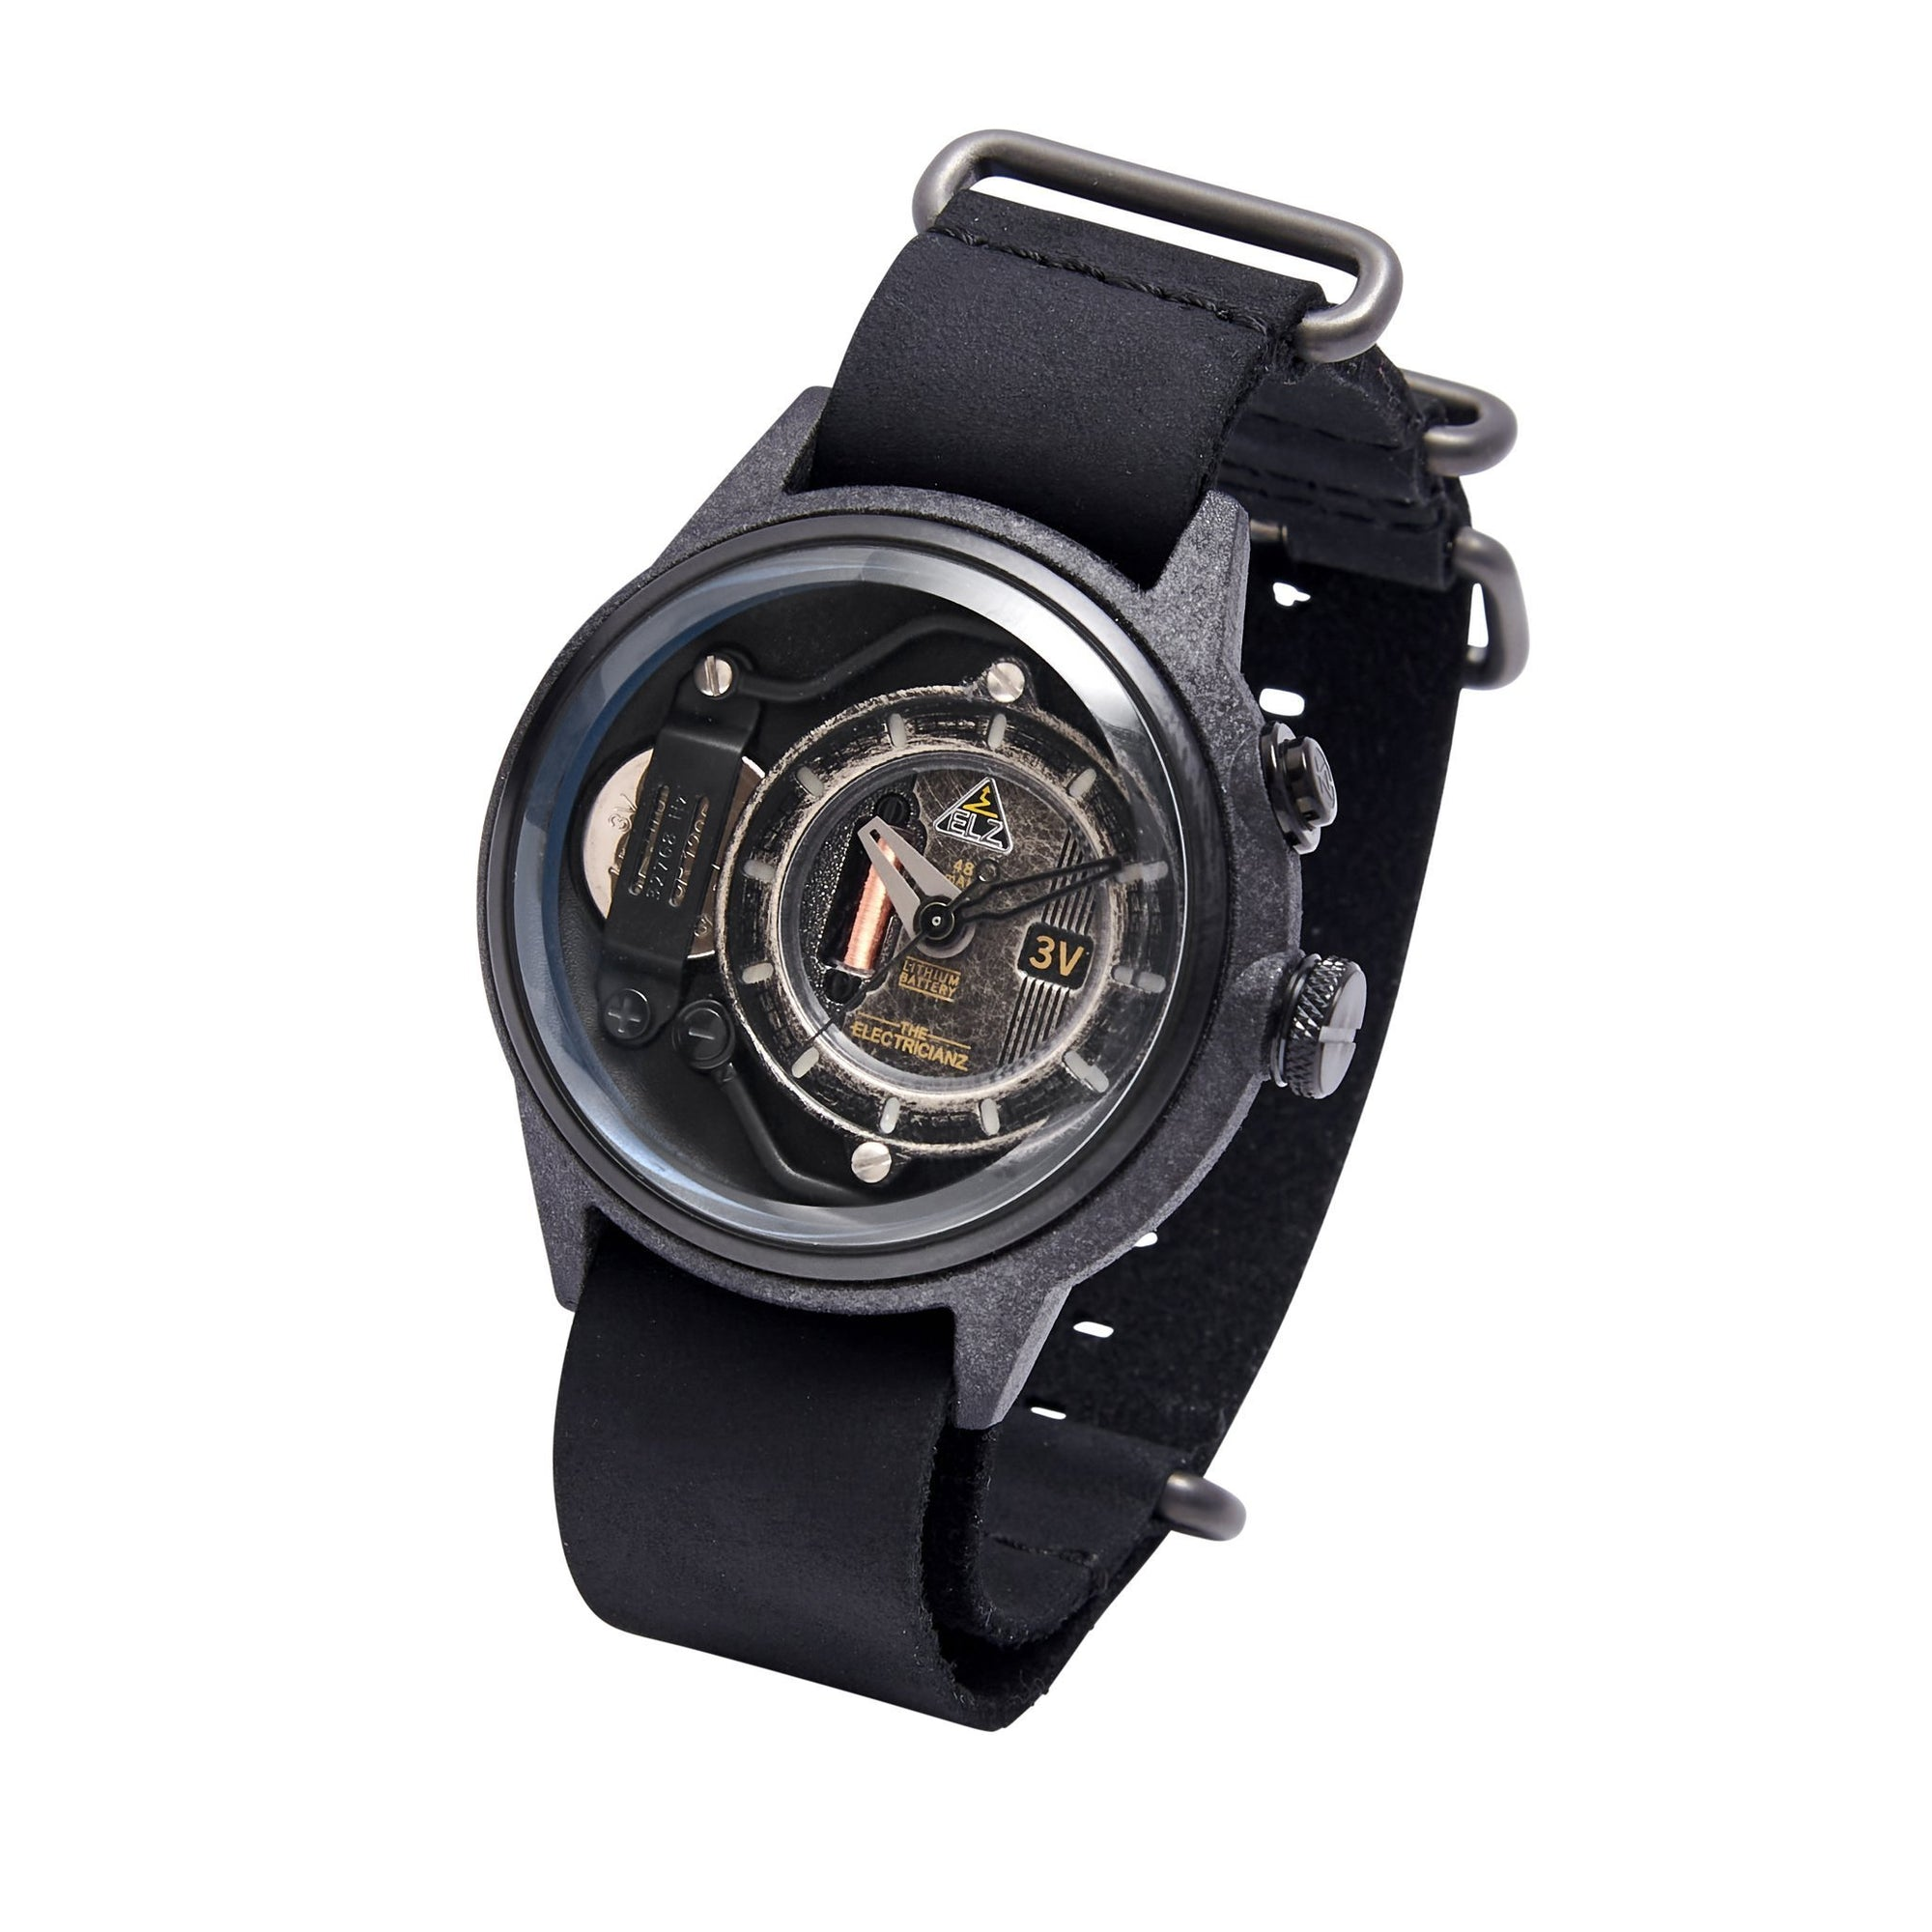 The Electricianz Nylon The Blackout - Watches & Crystals